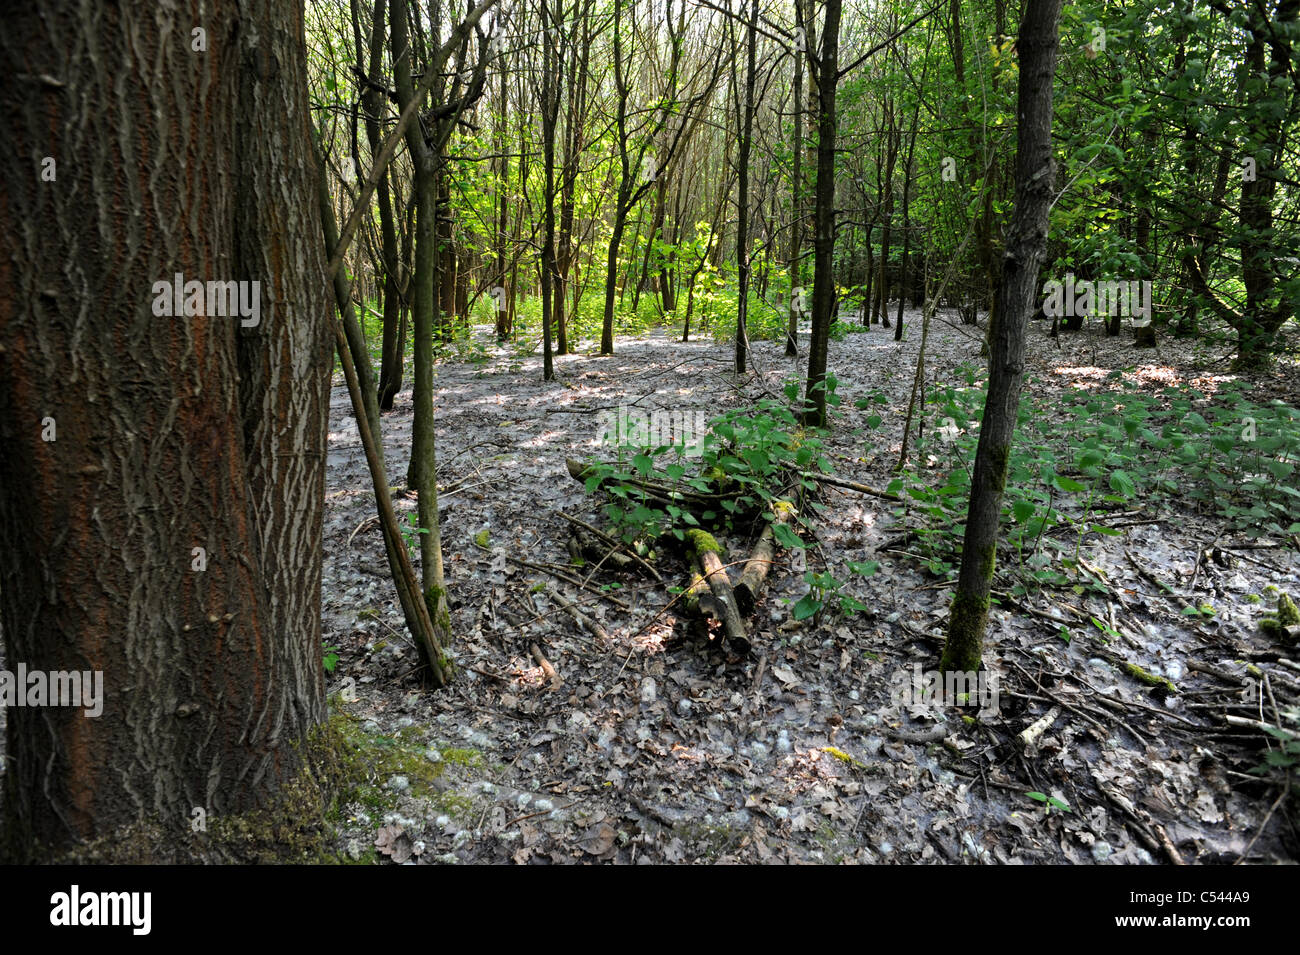 Spider webs cover the floor of Wheelers Woods - Stock Image